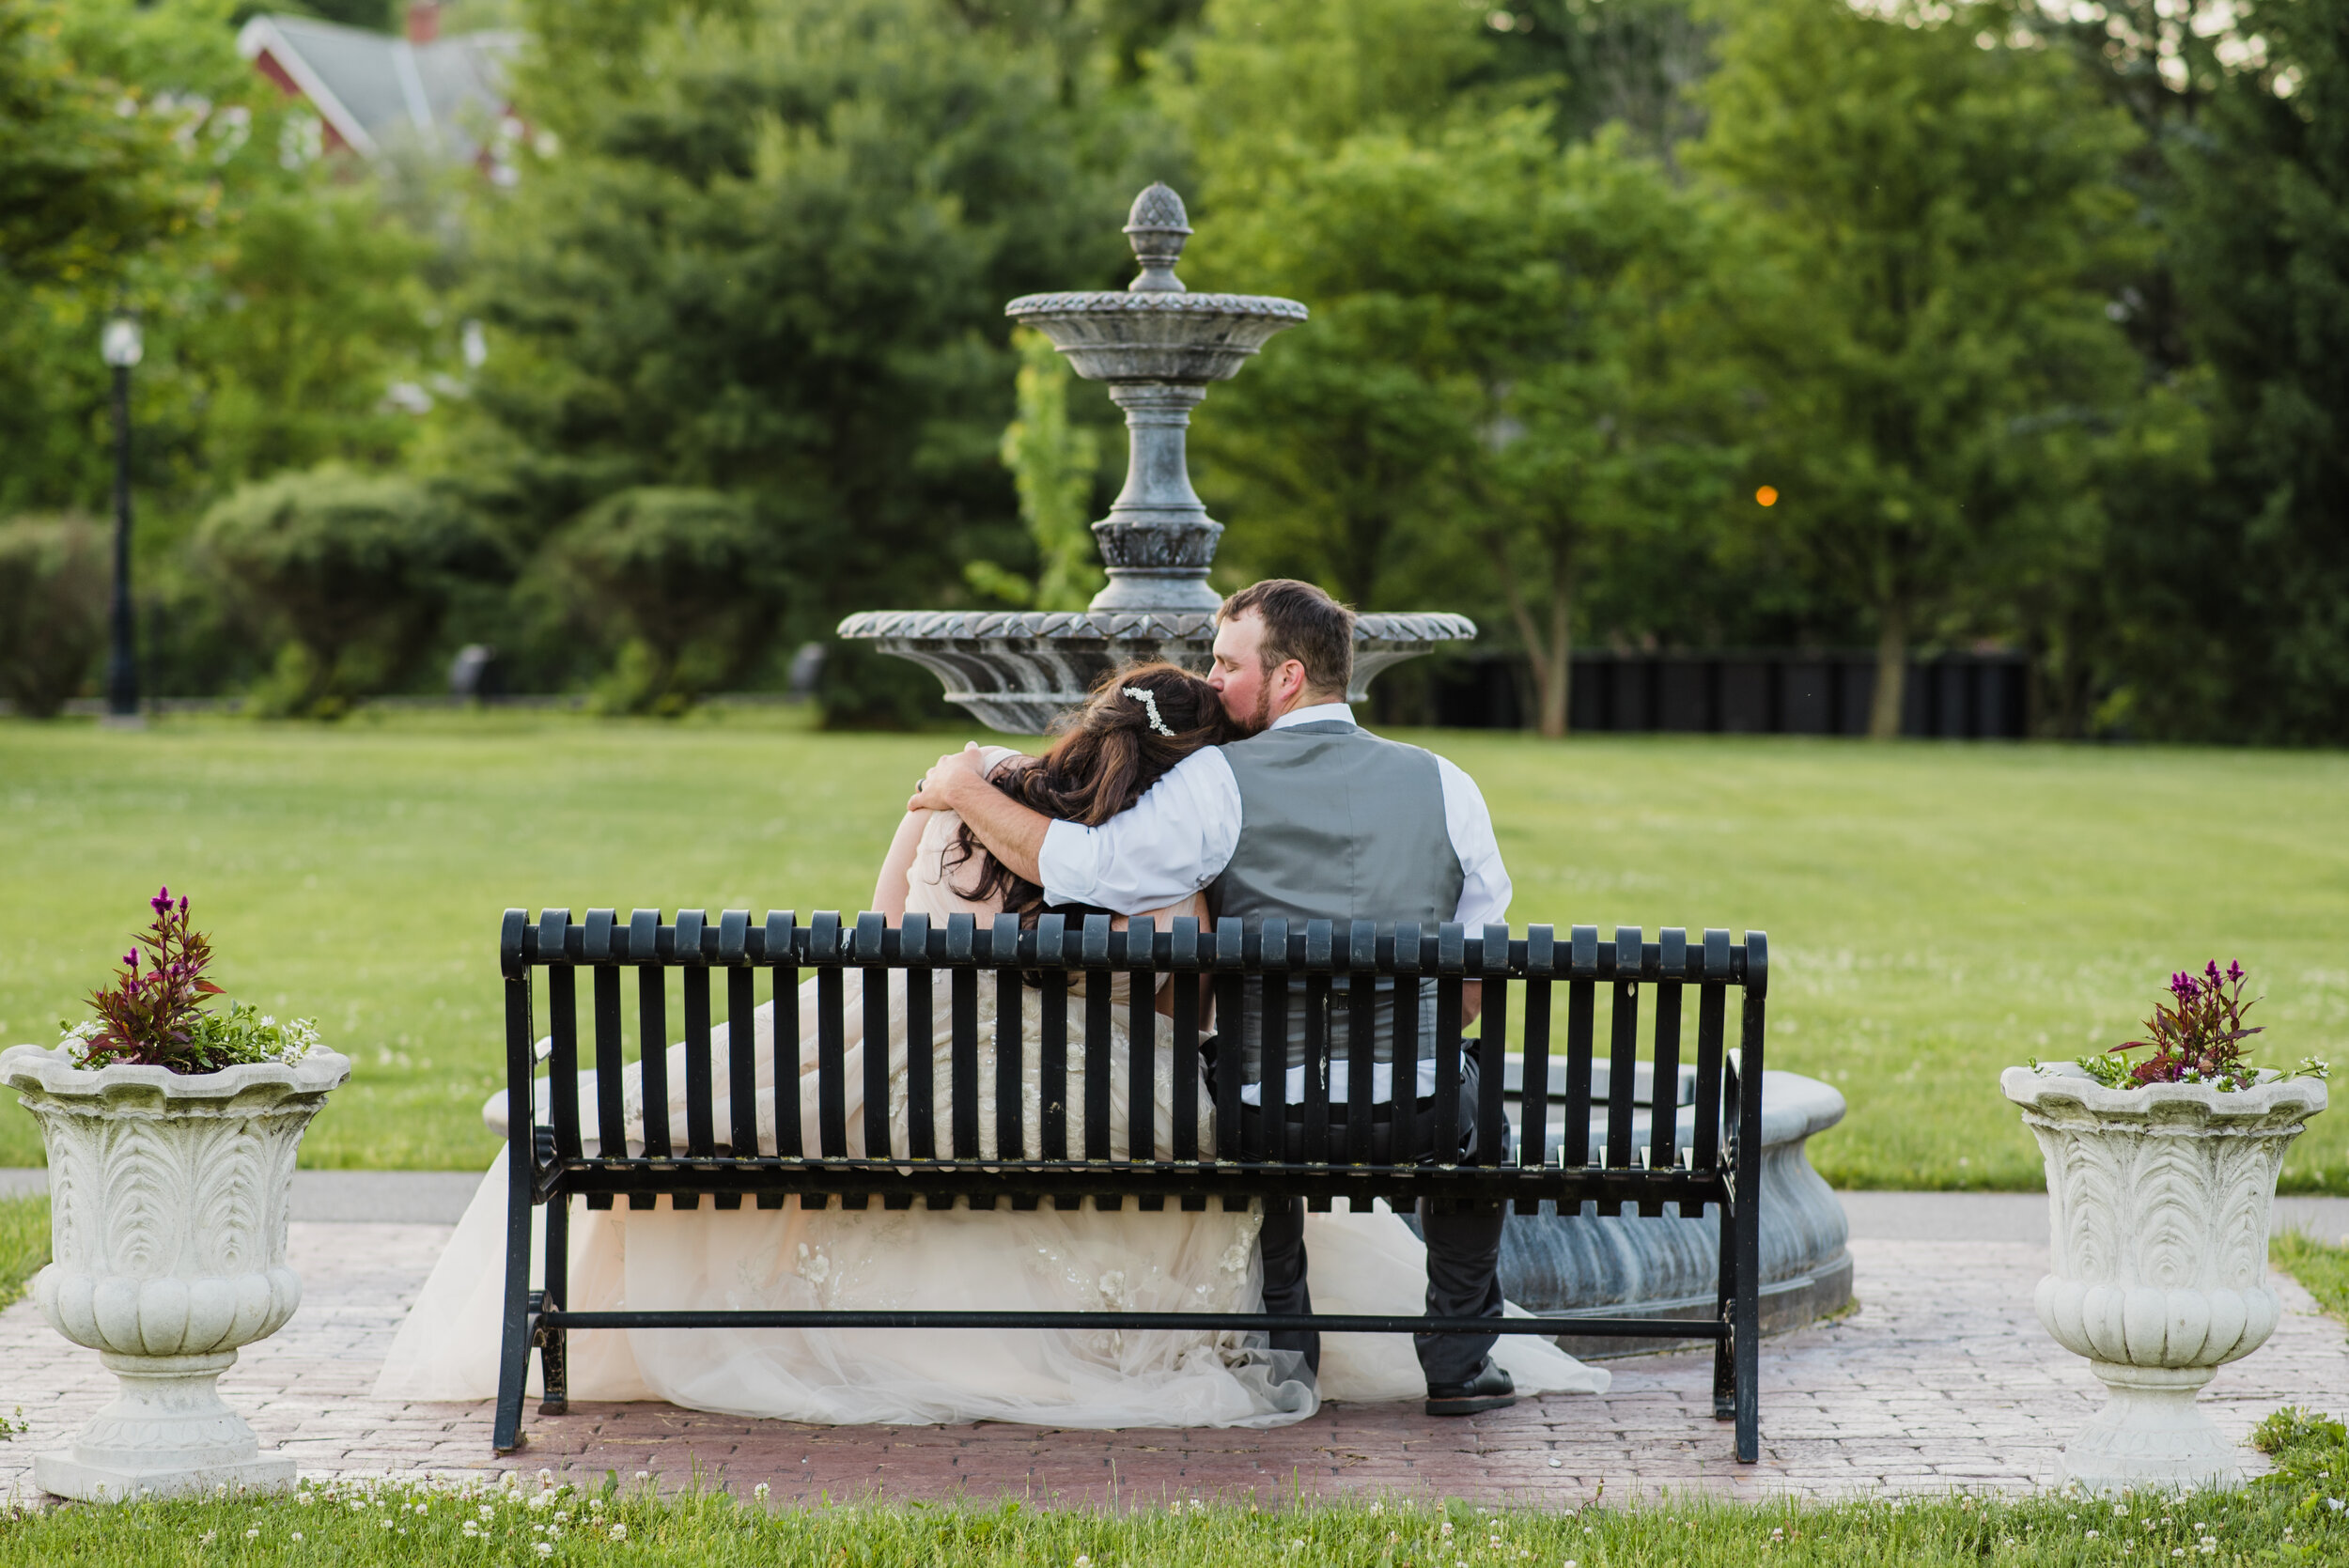 Wedding couple kissing on a bench by a fountain.